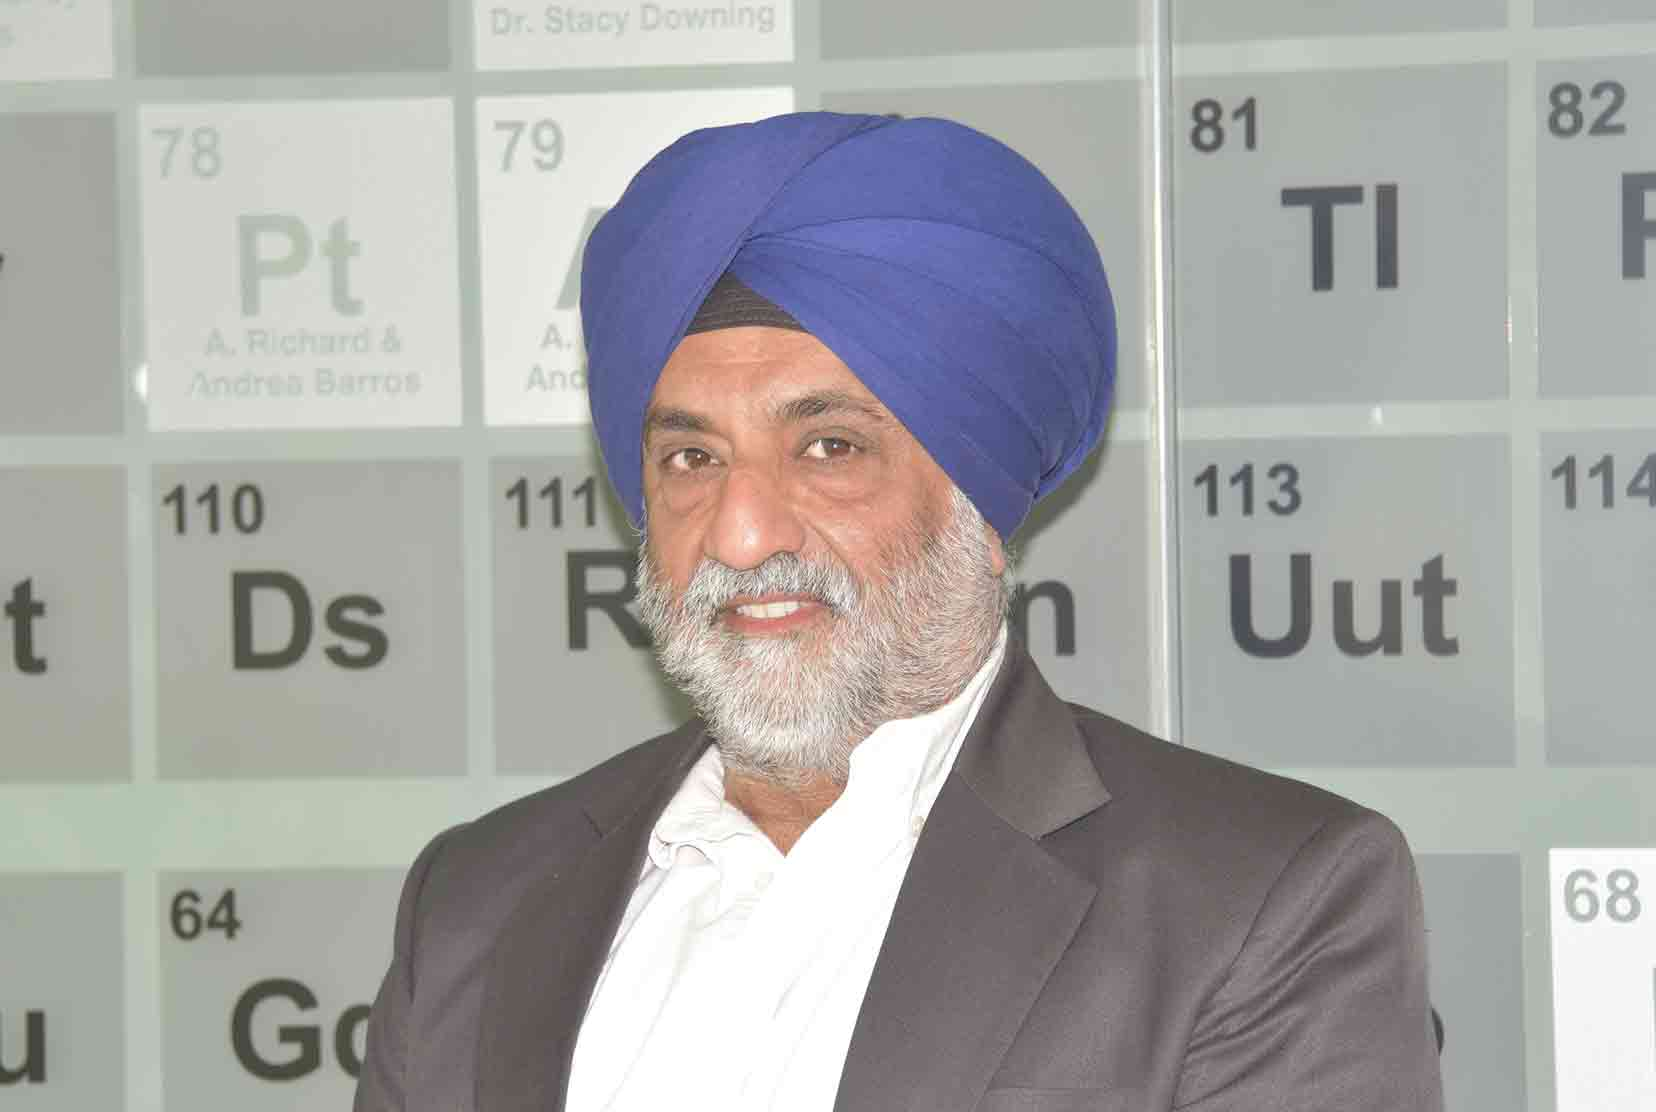 Dr. Harbinder Singh Dhillon, Professor of Biological Sciences, is the principal investigator of a three-year, $1 million National Science Foundation grant that will fund doctoral research fellowships and enable the University to establish a certificate program in bio-imaging and bio-photonics.